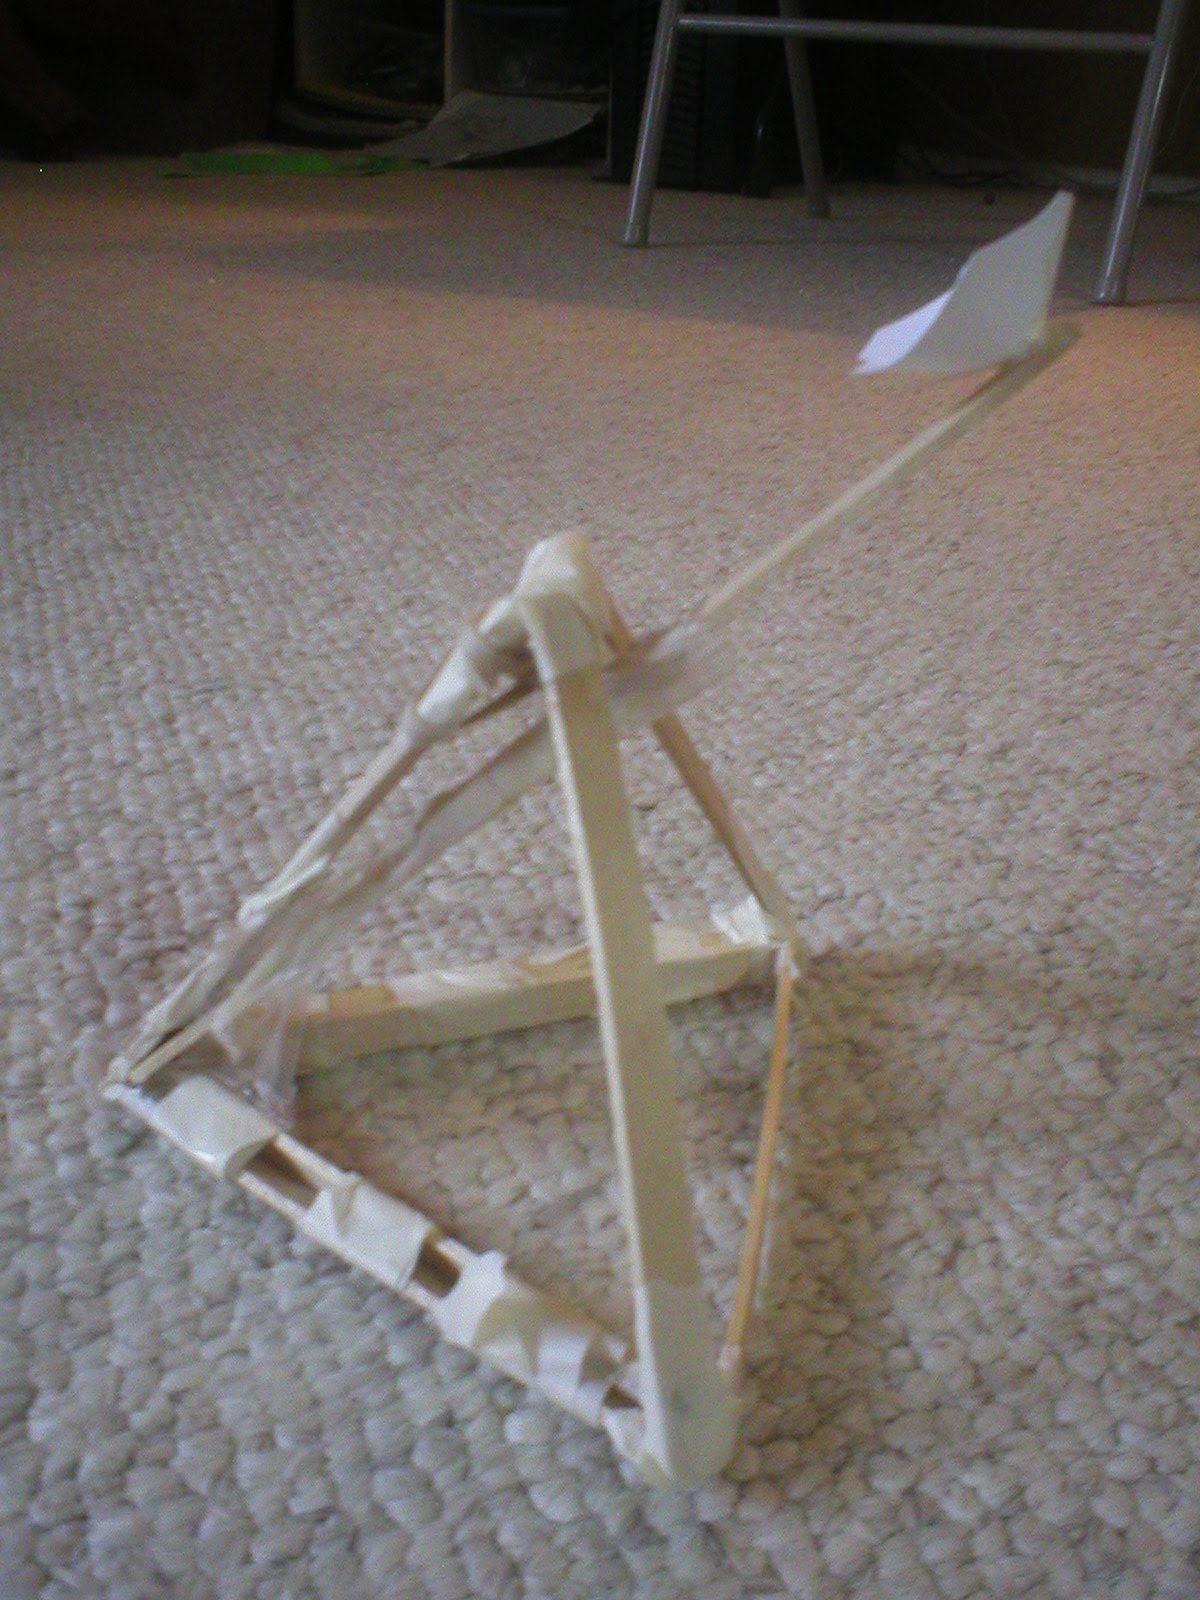 School In Kajamas Catapults Catapult Motion Diagram Onager Another Good Reference For Building This Sort Of Thing Is The Book Art Build Greek Ballistae Roman Onagers English Trebuchets